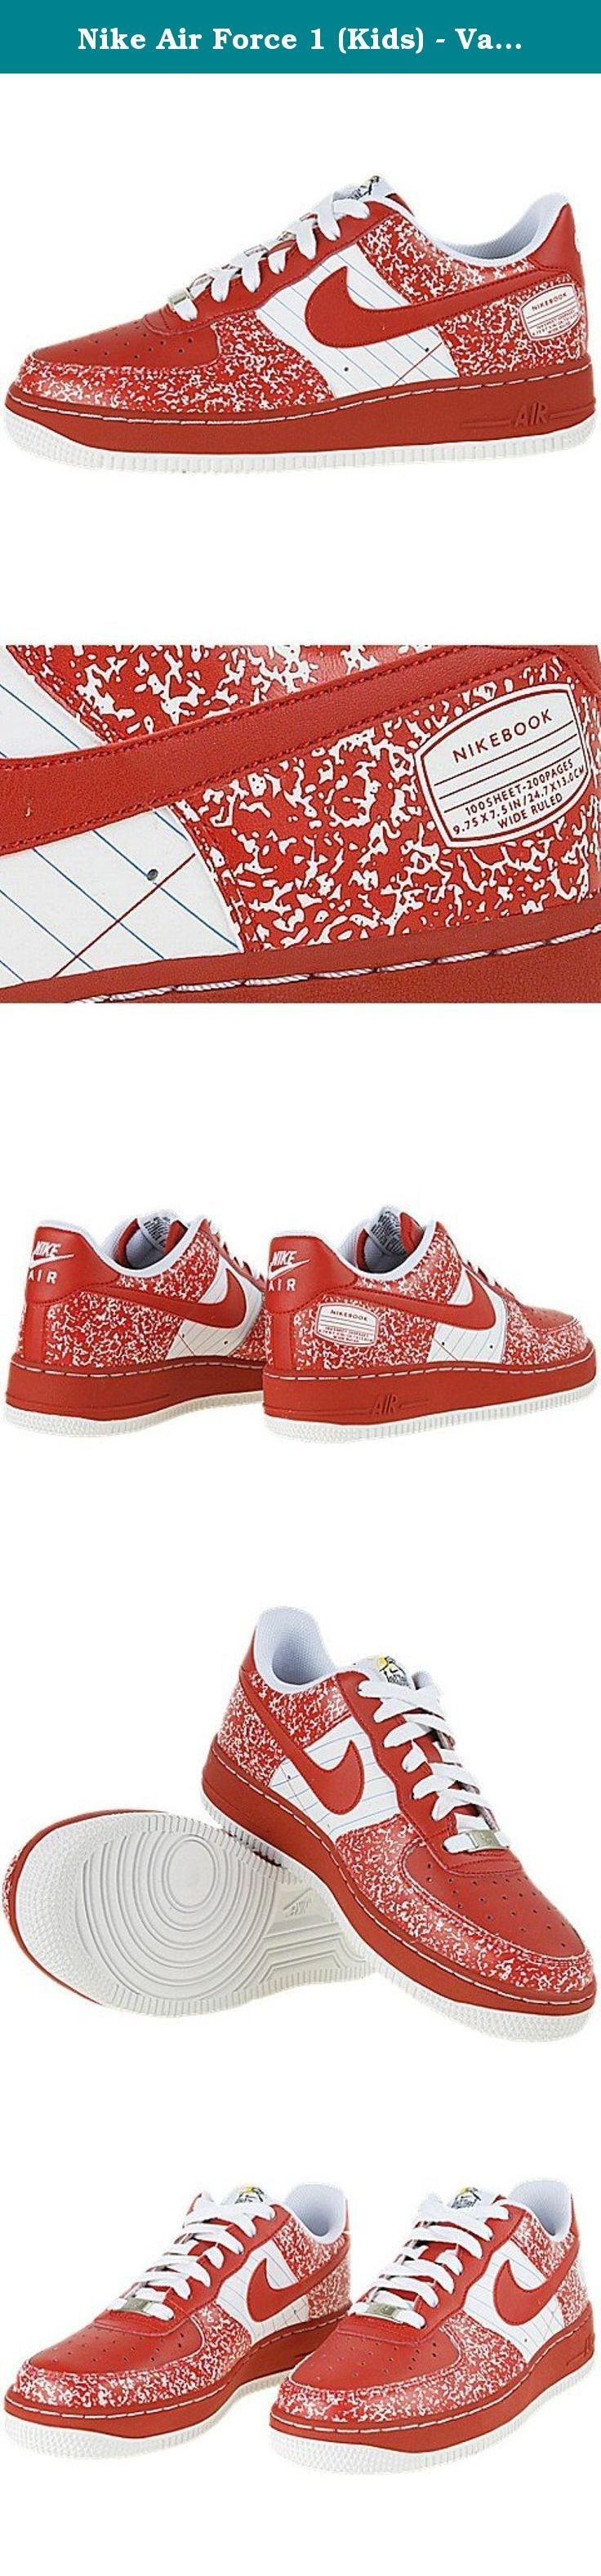 Nike Air Force 1 (Kids) - Varsity Red / Varsity Red-White, 5.5 M US. Nike's Air Force 1 youth retro shoes are one of if not the iconic basketball and retro shoe on the market today. They have been global leaders for 25 years, and just like the people that strap them on, they aren't going to be stopped anytime soon. If you are looking for the perfect shoe, the Nike's Air Force 1 youth retro shoes are considered by a lot of shoe aficionados to be such a holy grail of footwear. The nice…